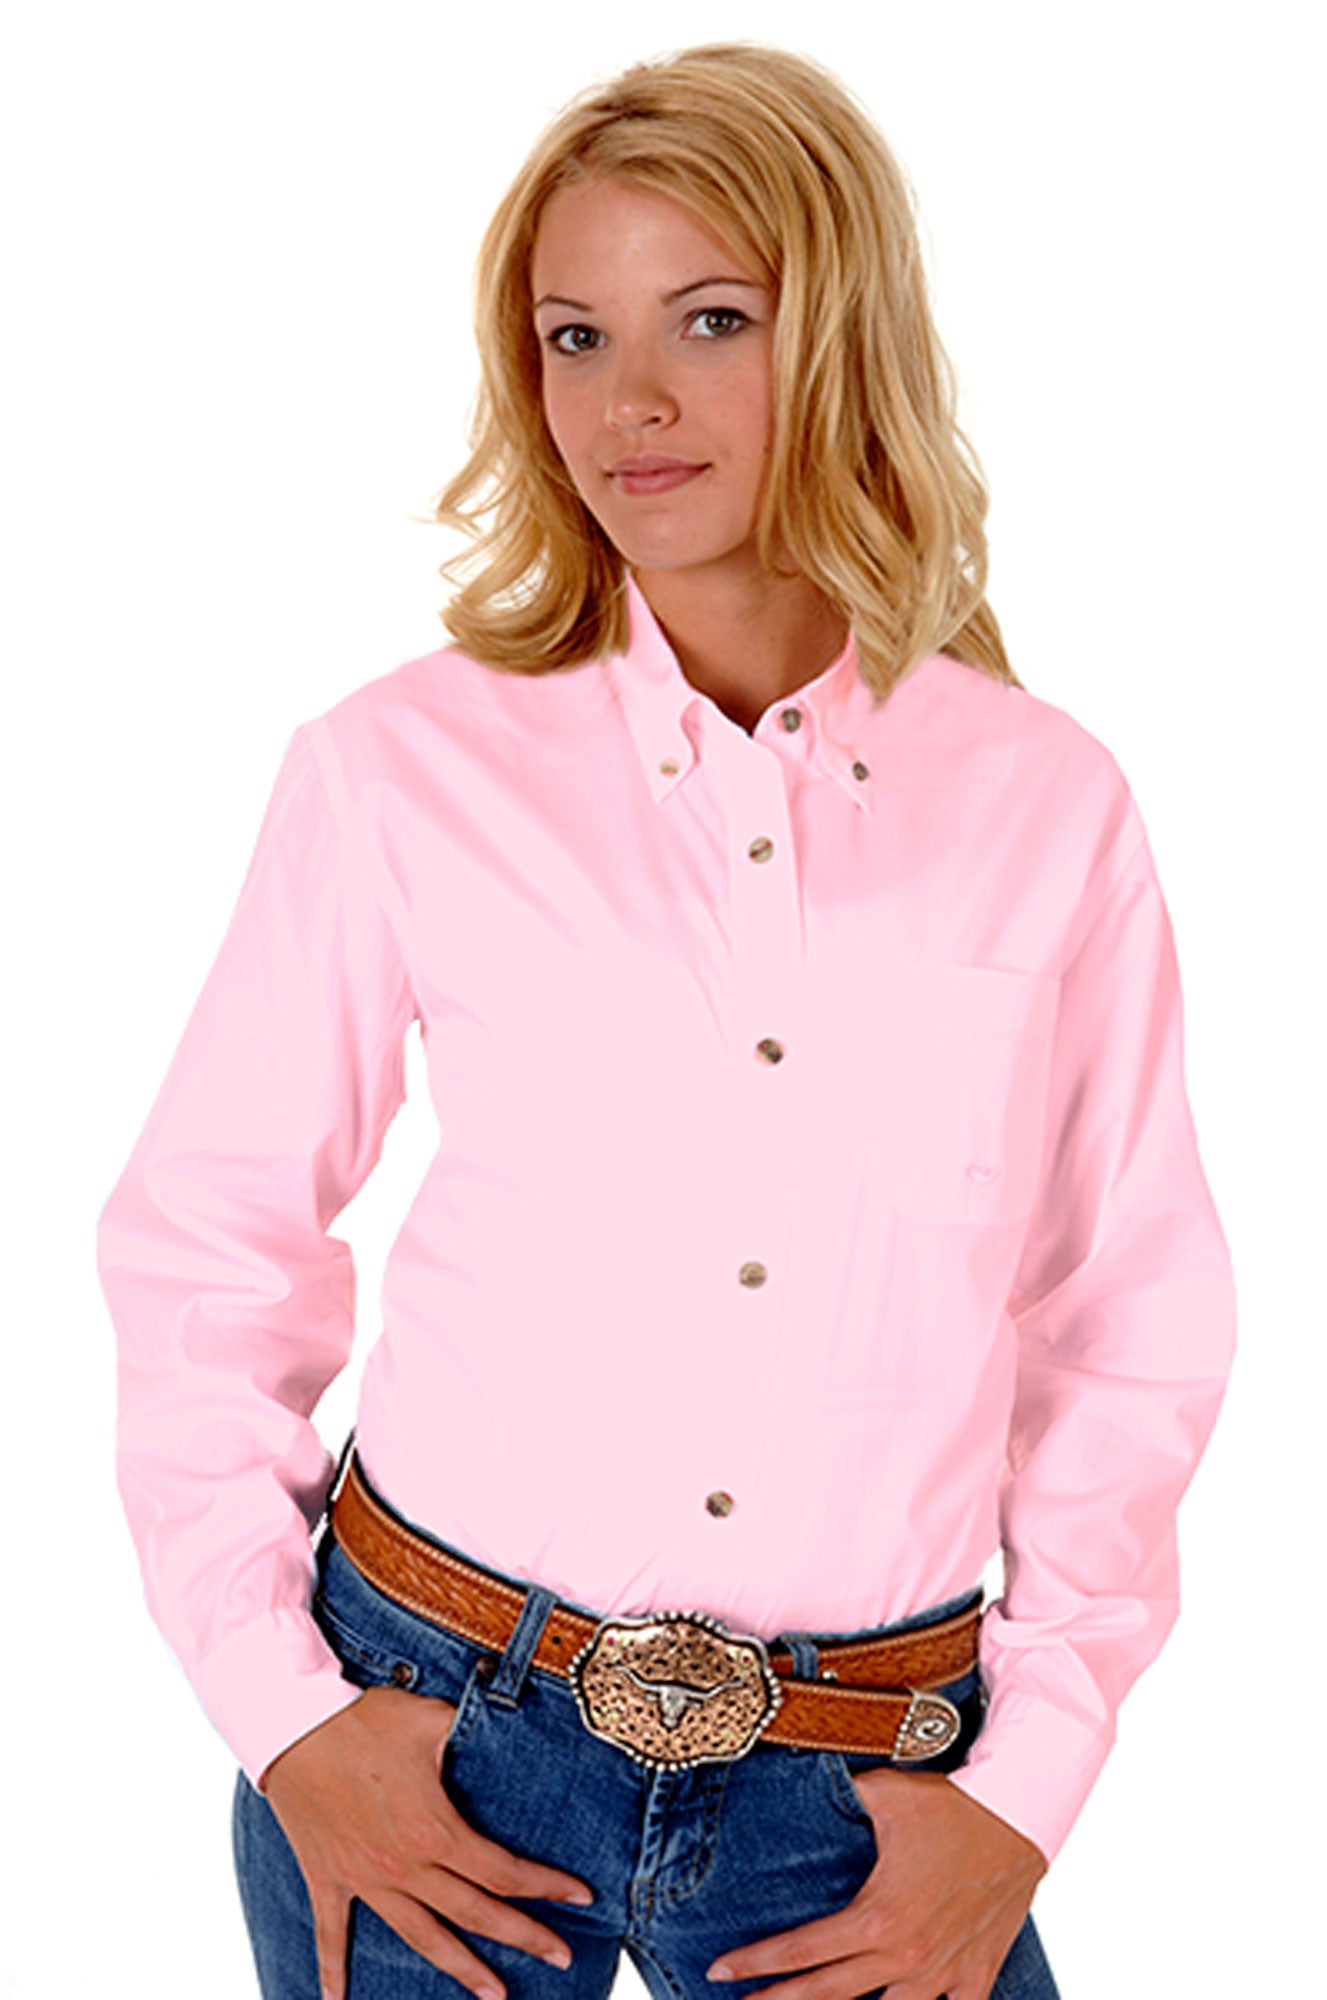 ROPER LADIES PINK SOLID POPLIN BTN DOWN COLLR VERGTD BTN SOLID POPLIN BUTTON COLLECTION LONG SLEEVE SHIRT